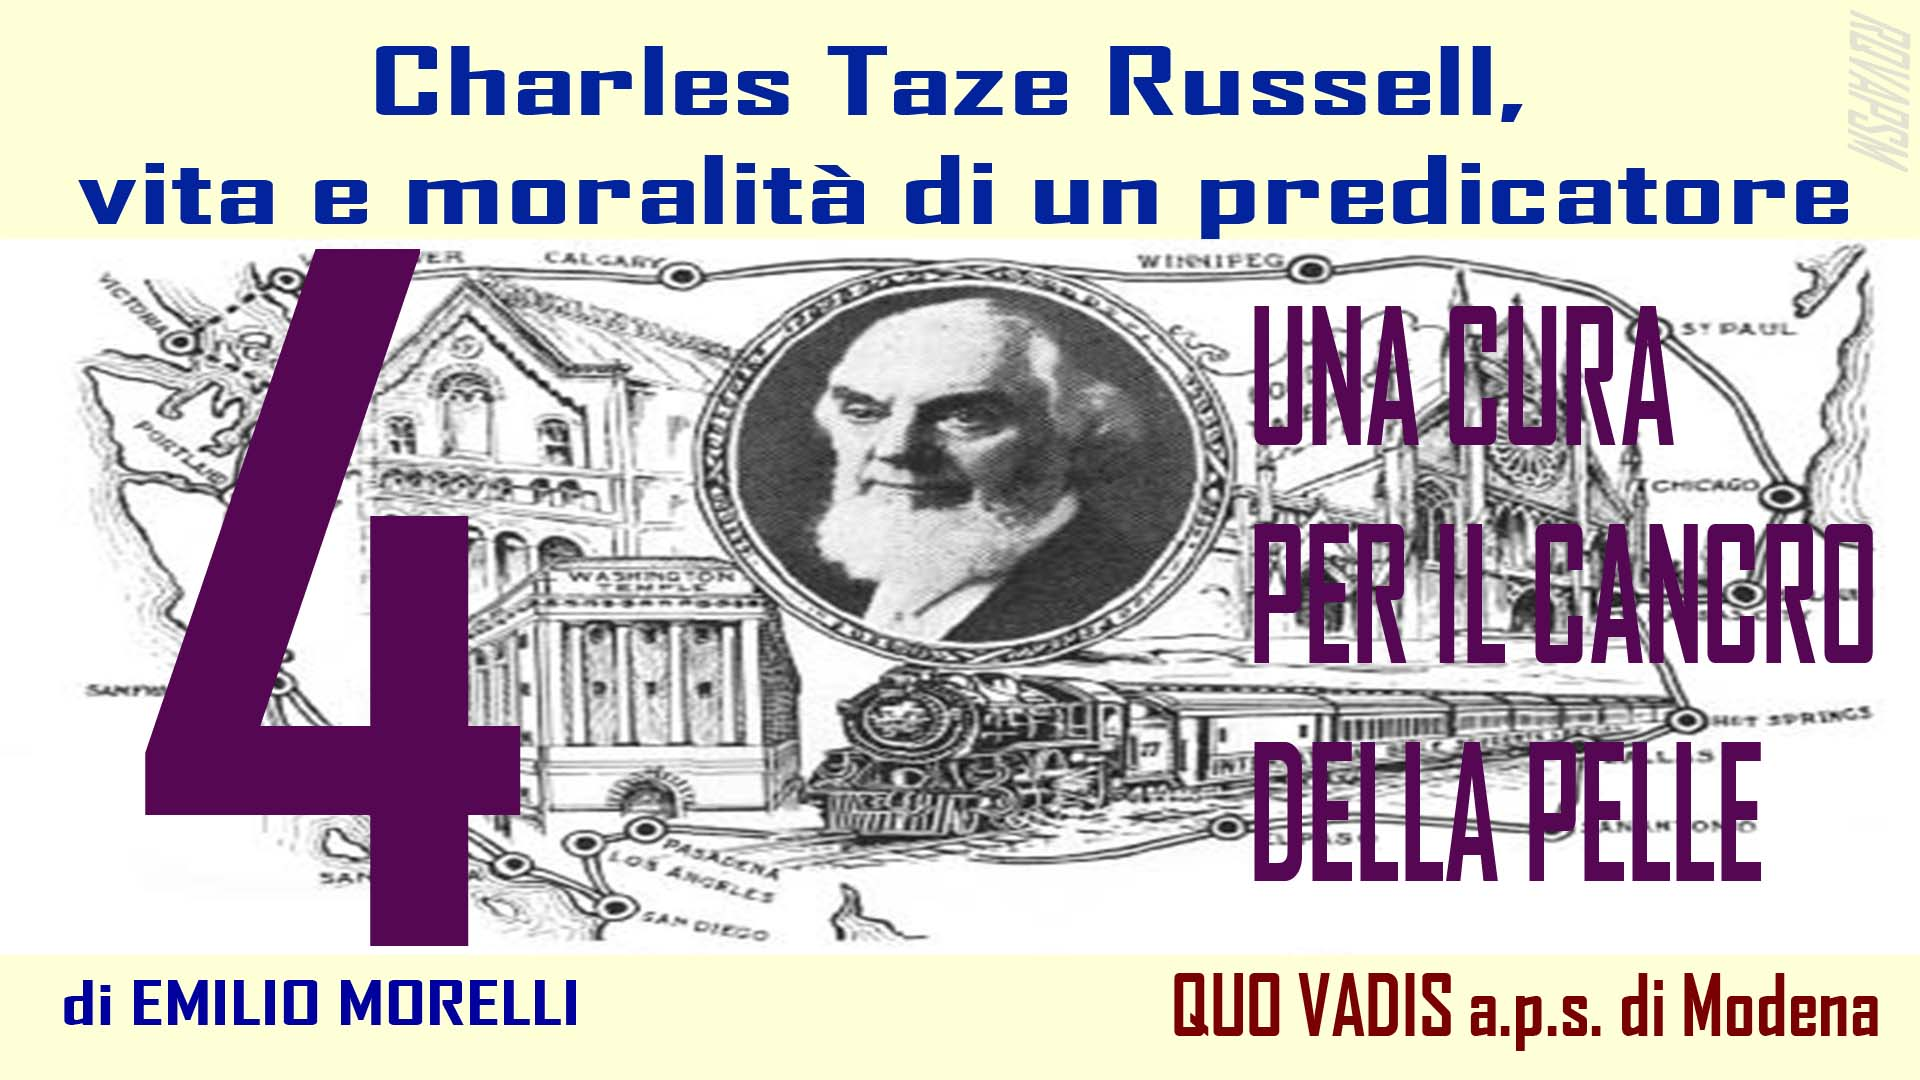 Charles Taze Russell,